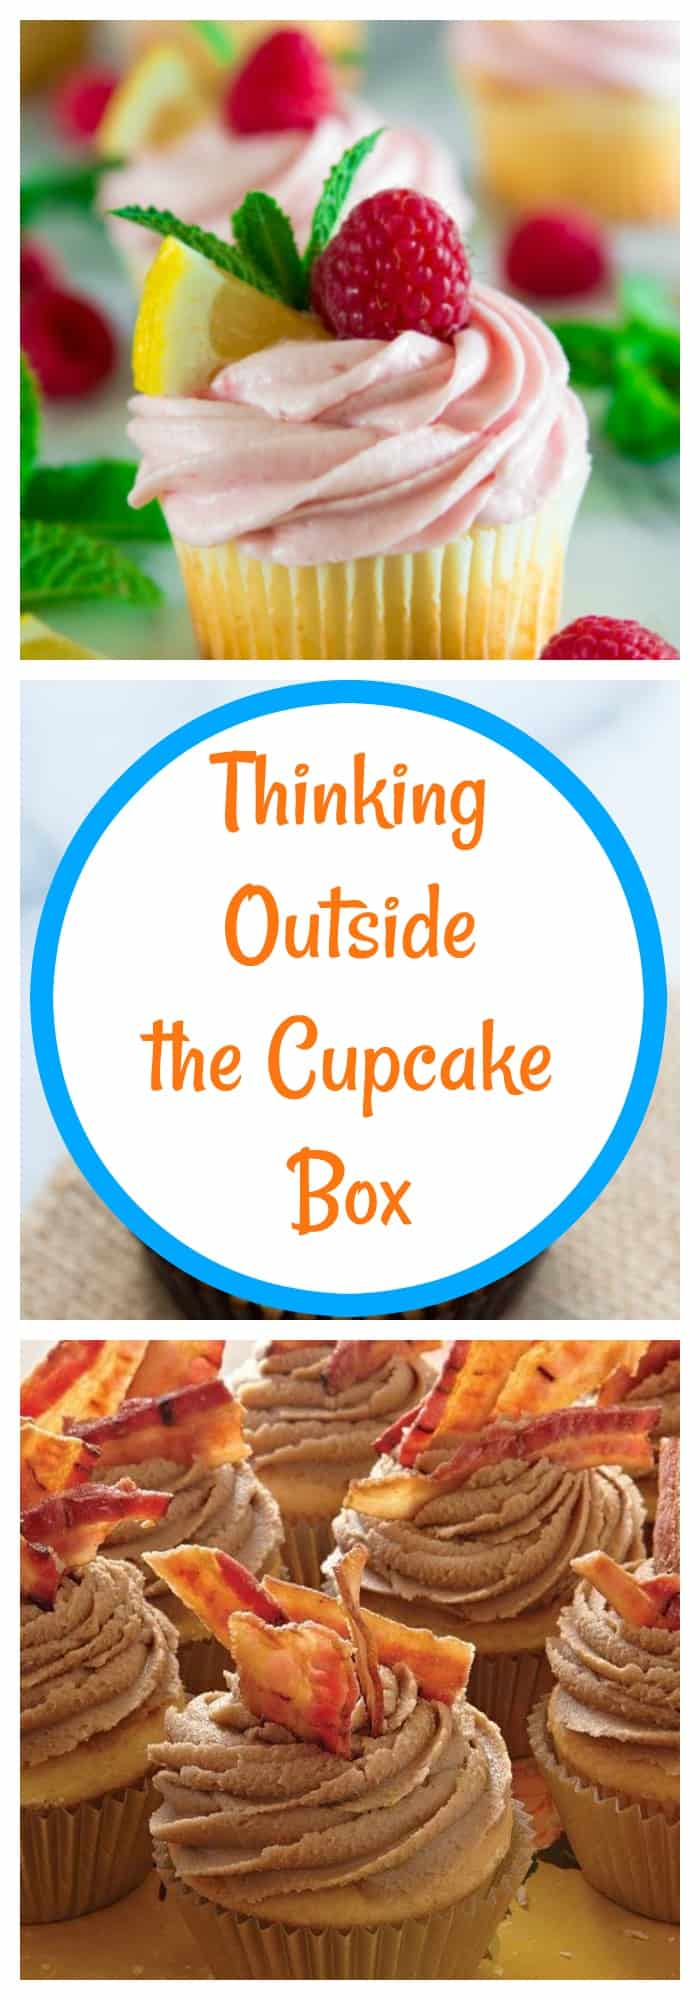 Cooking--Thinking Outside the Cupcake Box--The Organized Mom